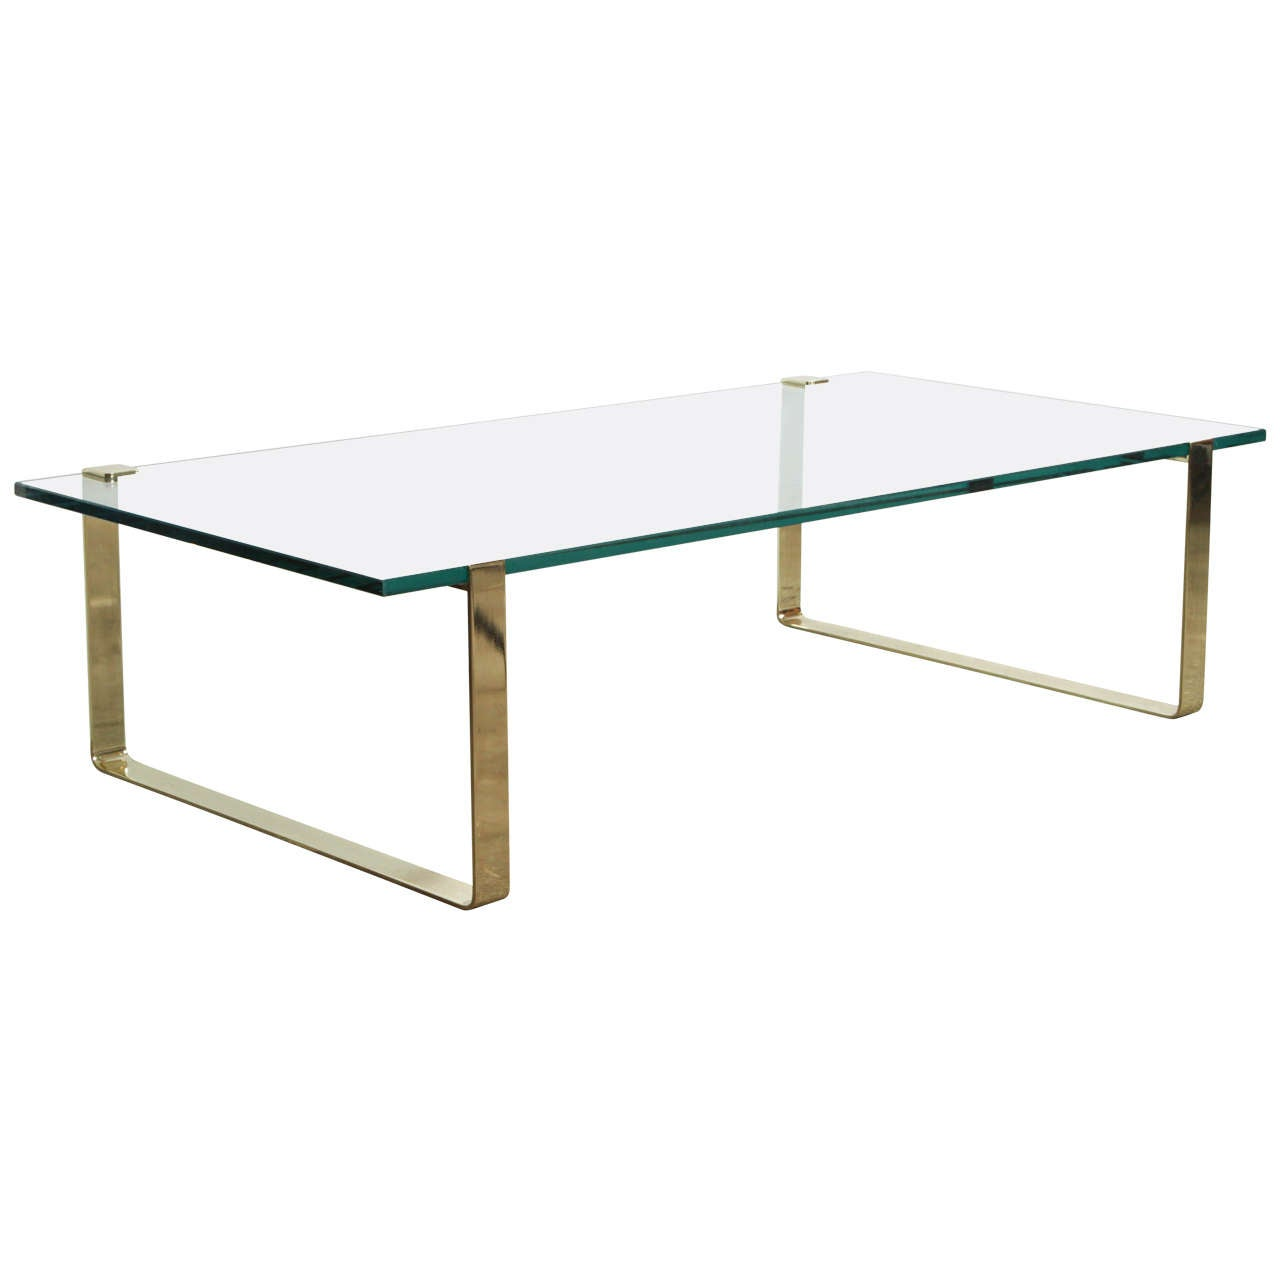 Vintage Brass Bands And Glass Coffee Table Attributed To Pace Collection At 1stdibs